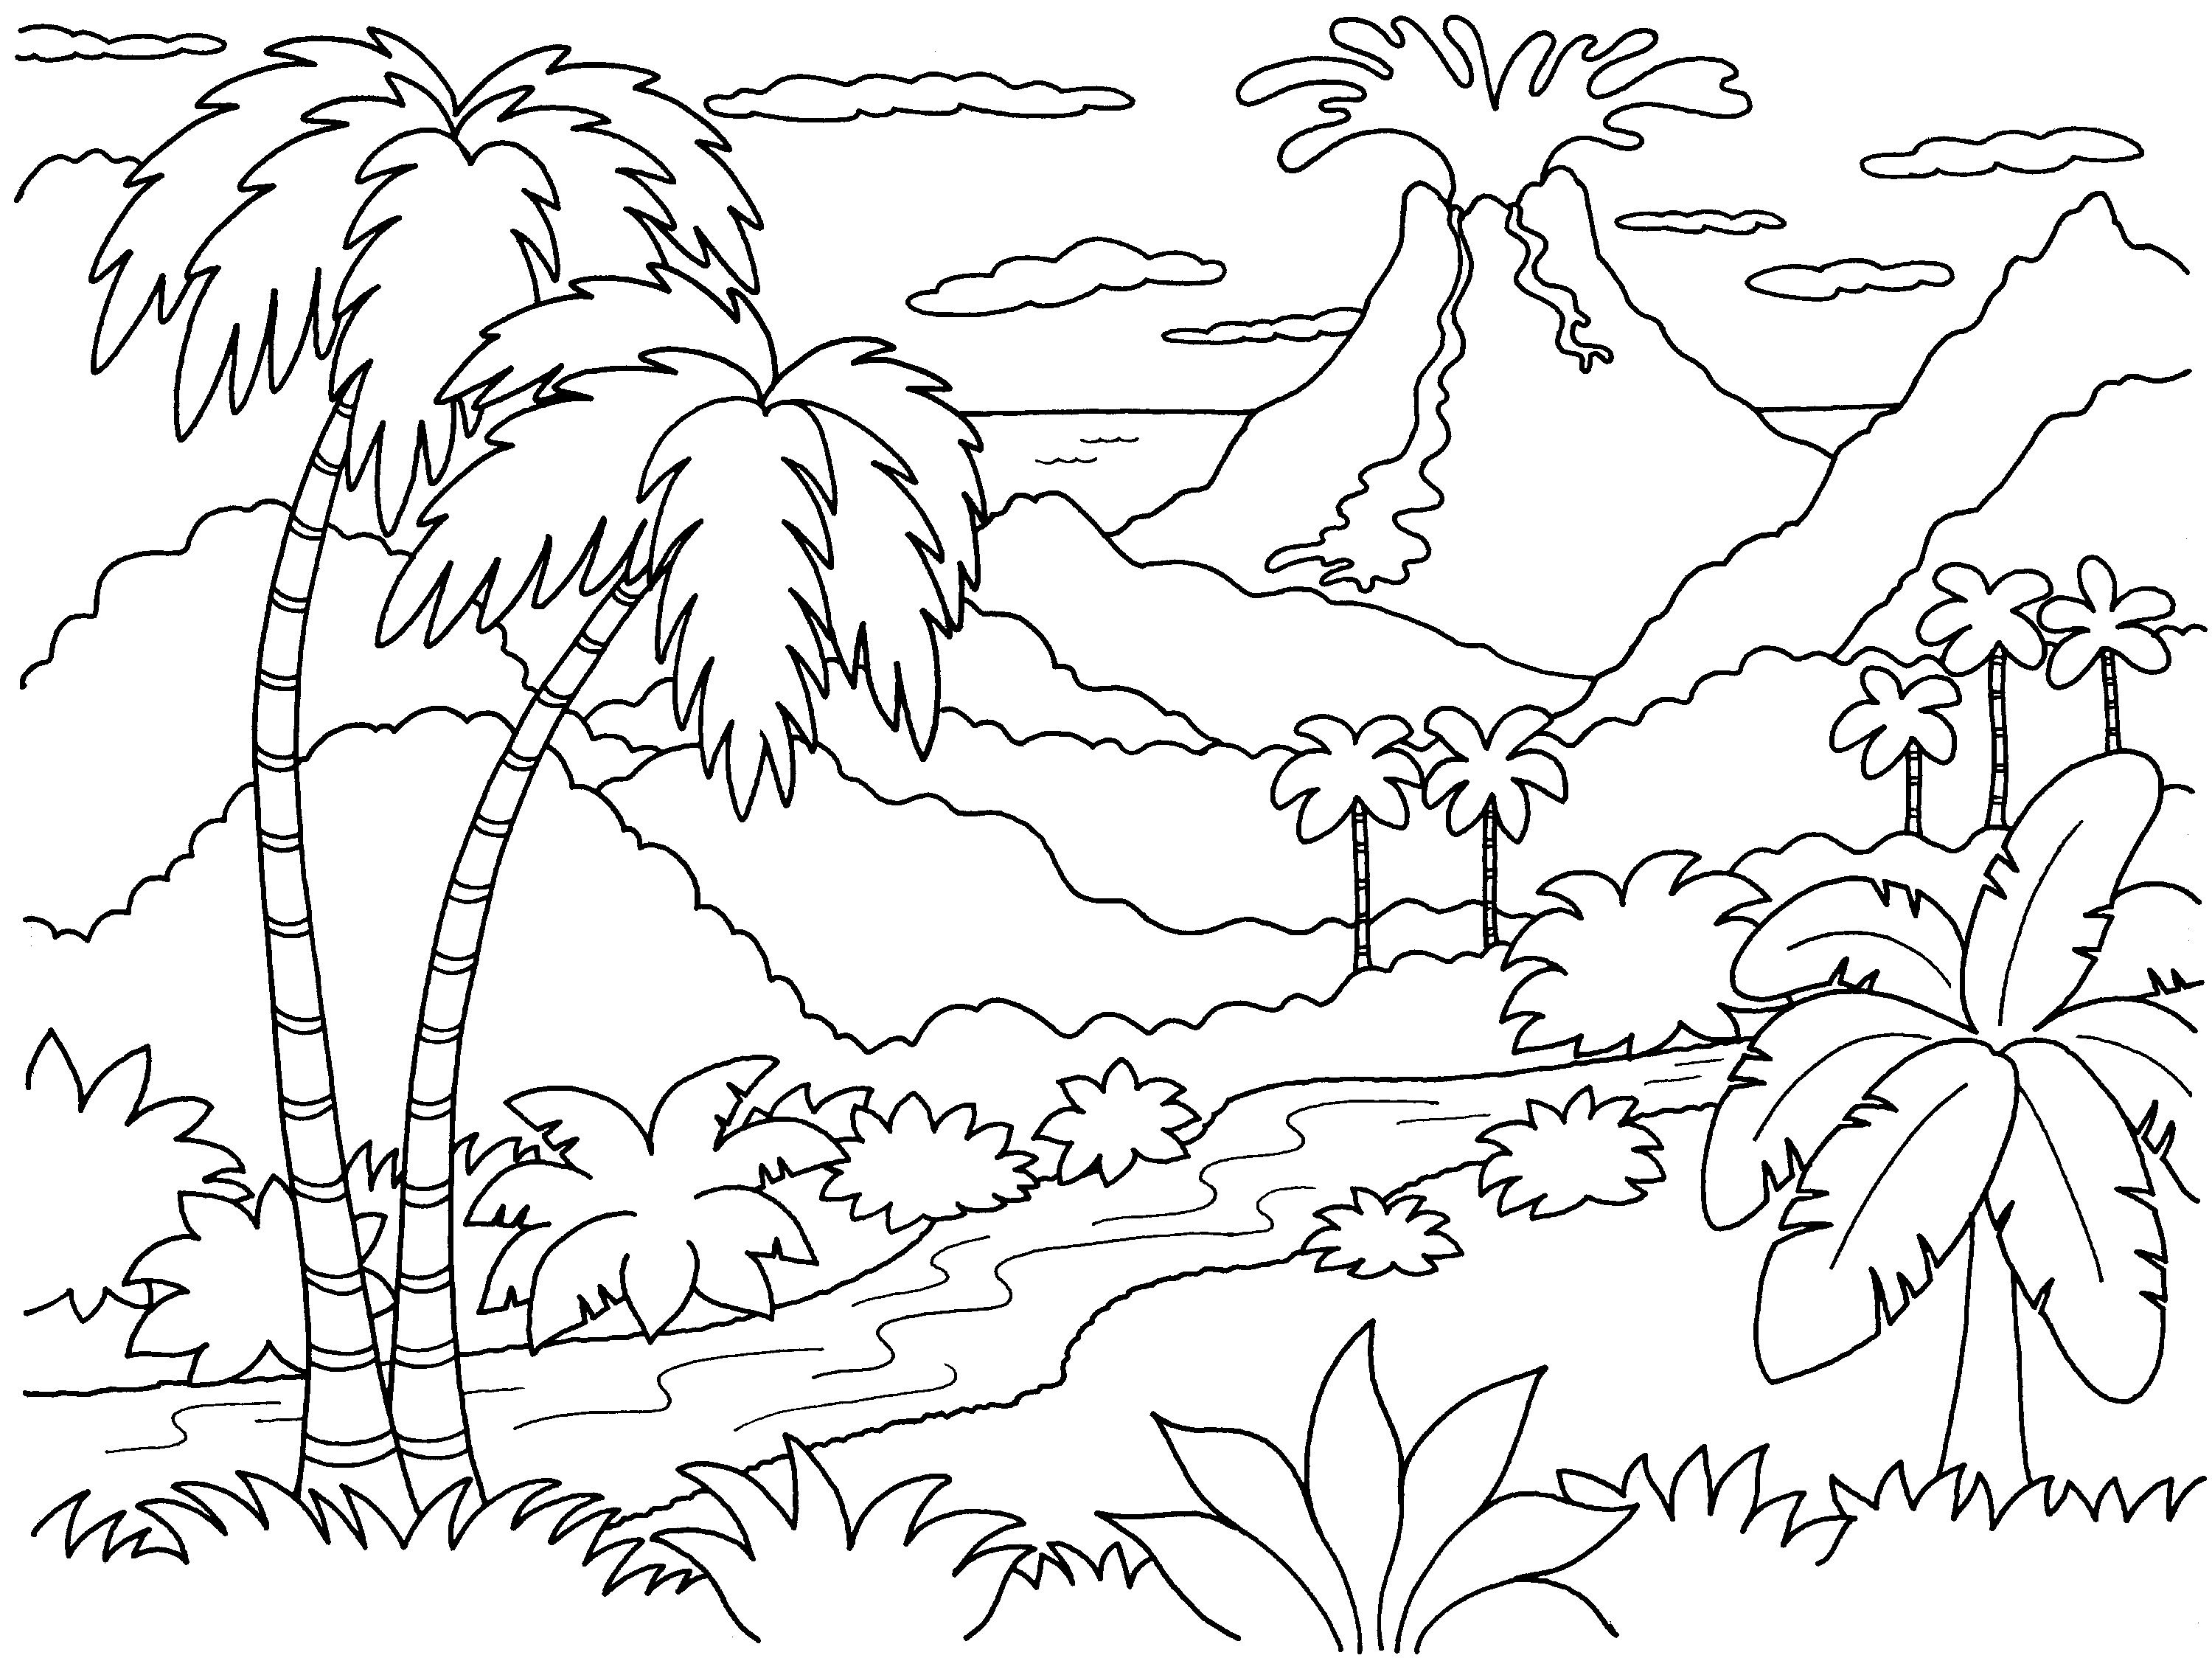 Dinosaur And Volcano Coloring Pages Google Search Coloring Pages Nature Beach Coloring Pages Tree Coloring Page